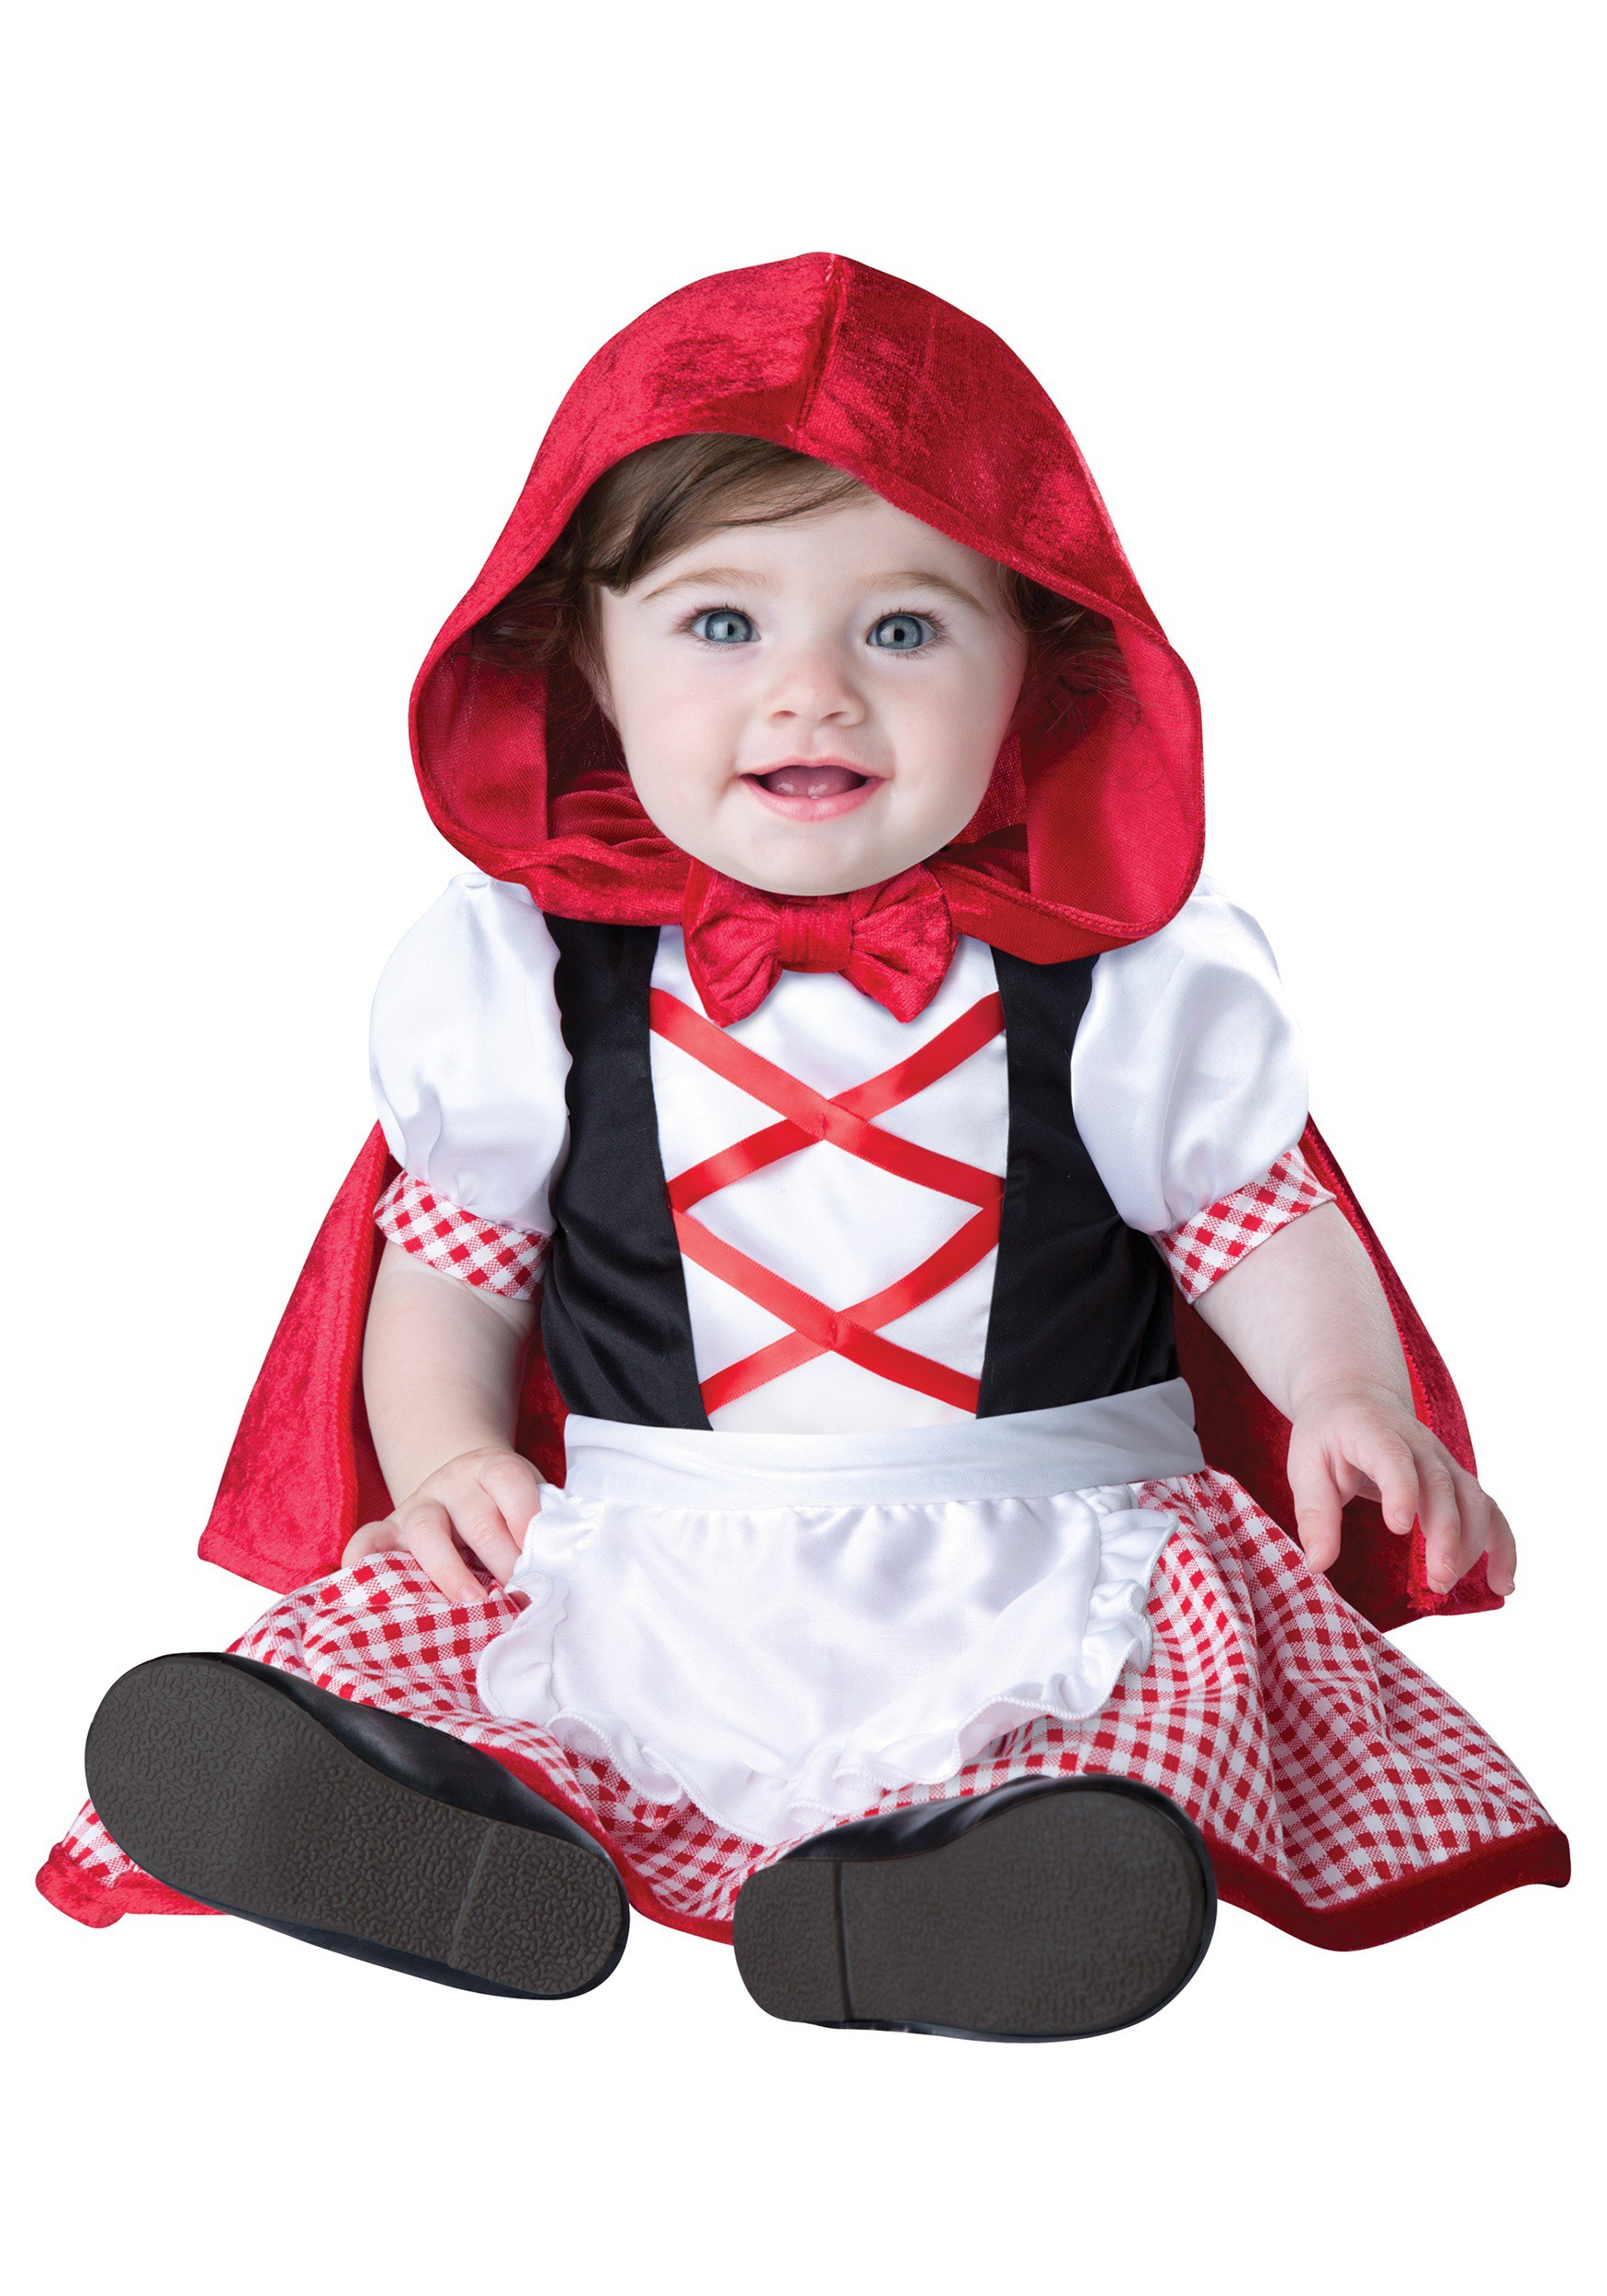 sc 1 st  Halloween Costumes : 9 month old halloween costume  - Germanpascual.Com